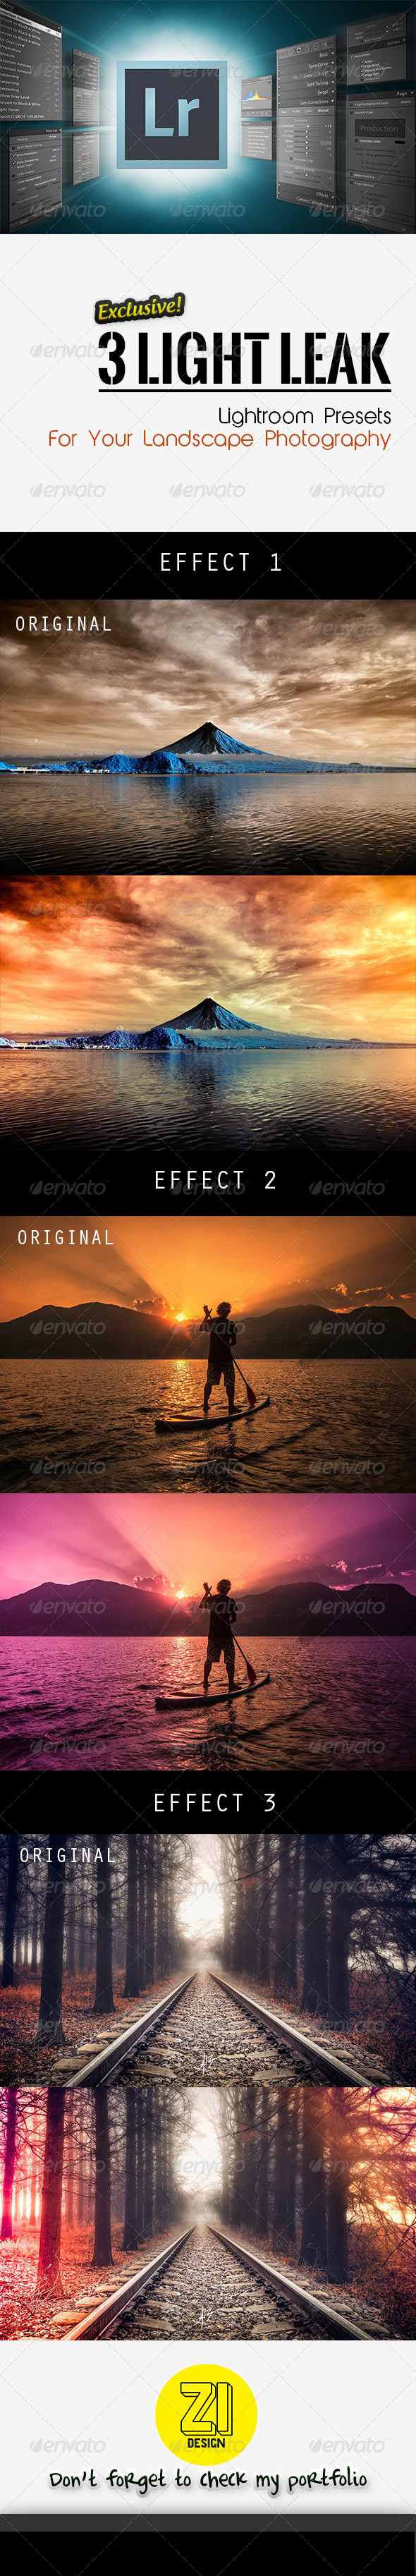 GraphicRiver 3 Light Leak Lightroom Presets 8745127